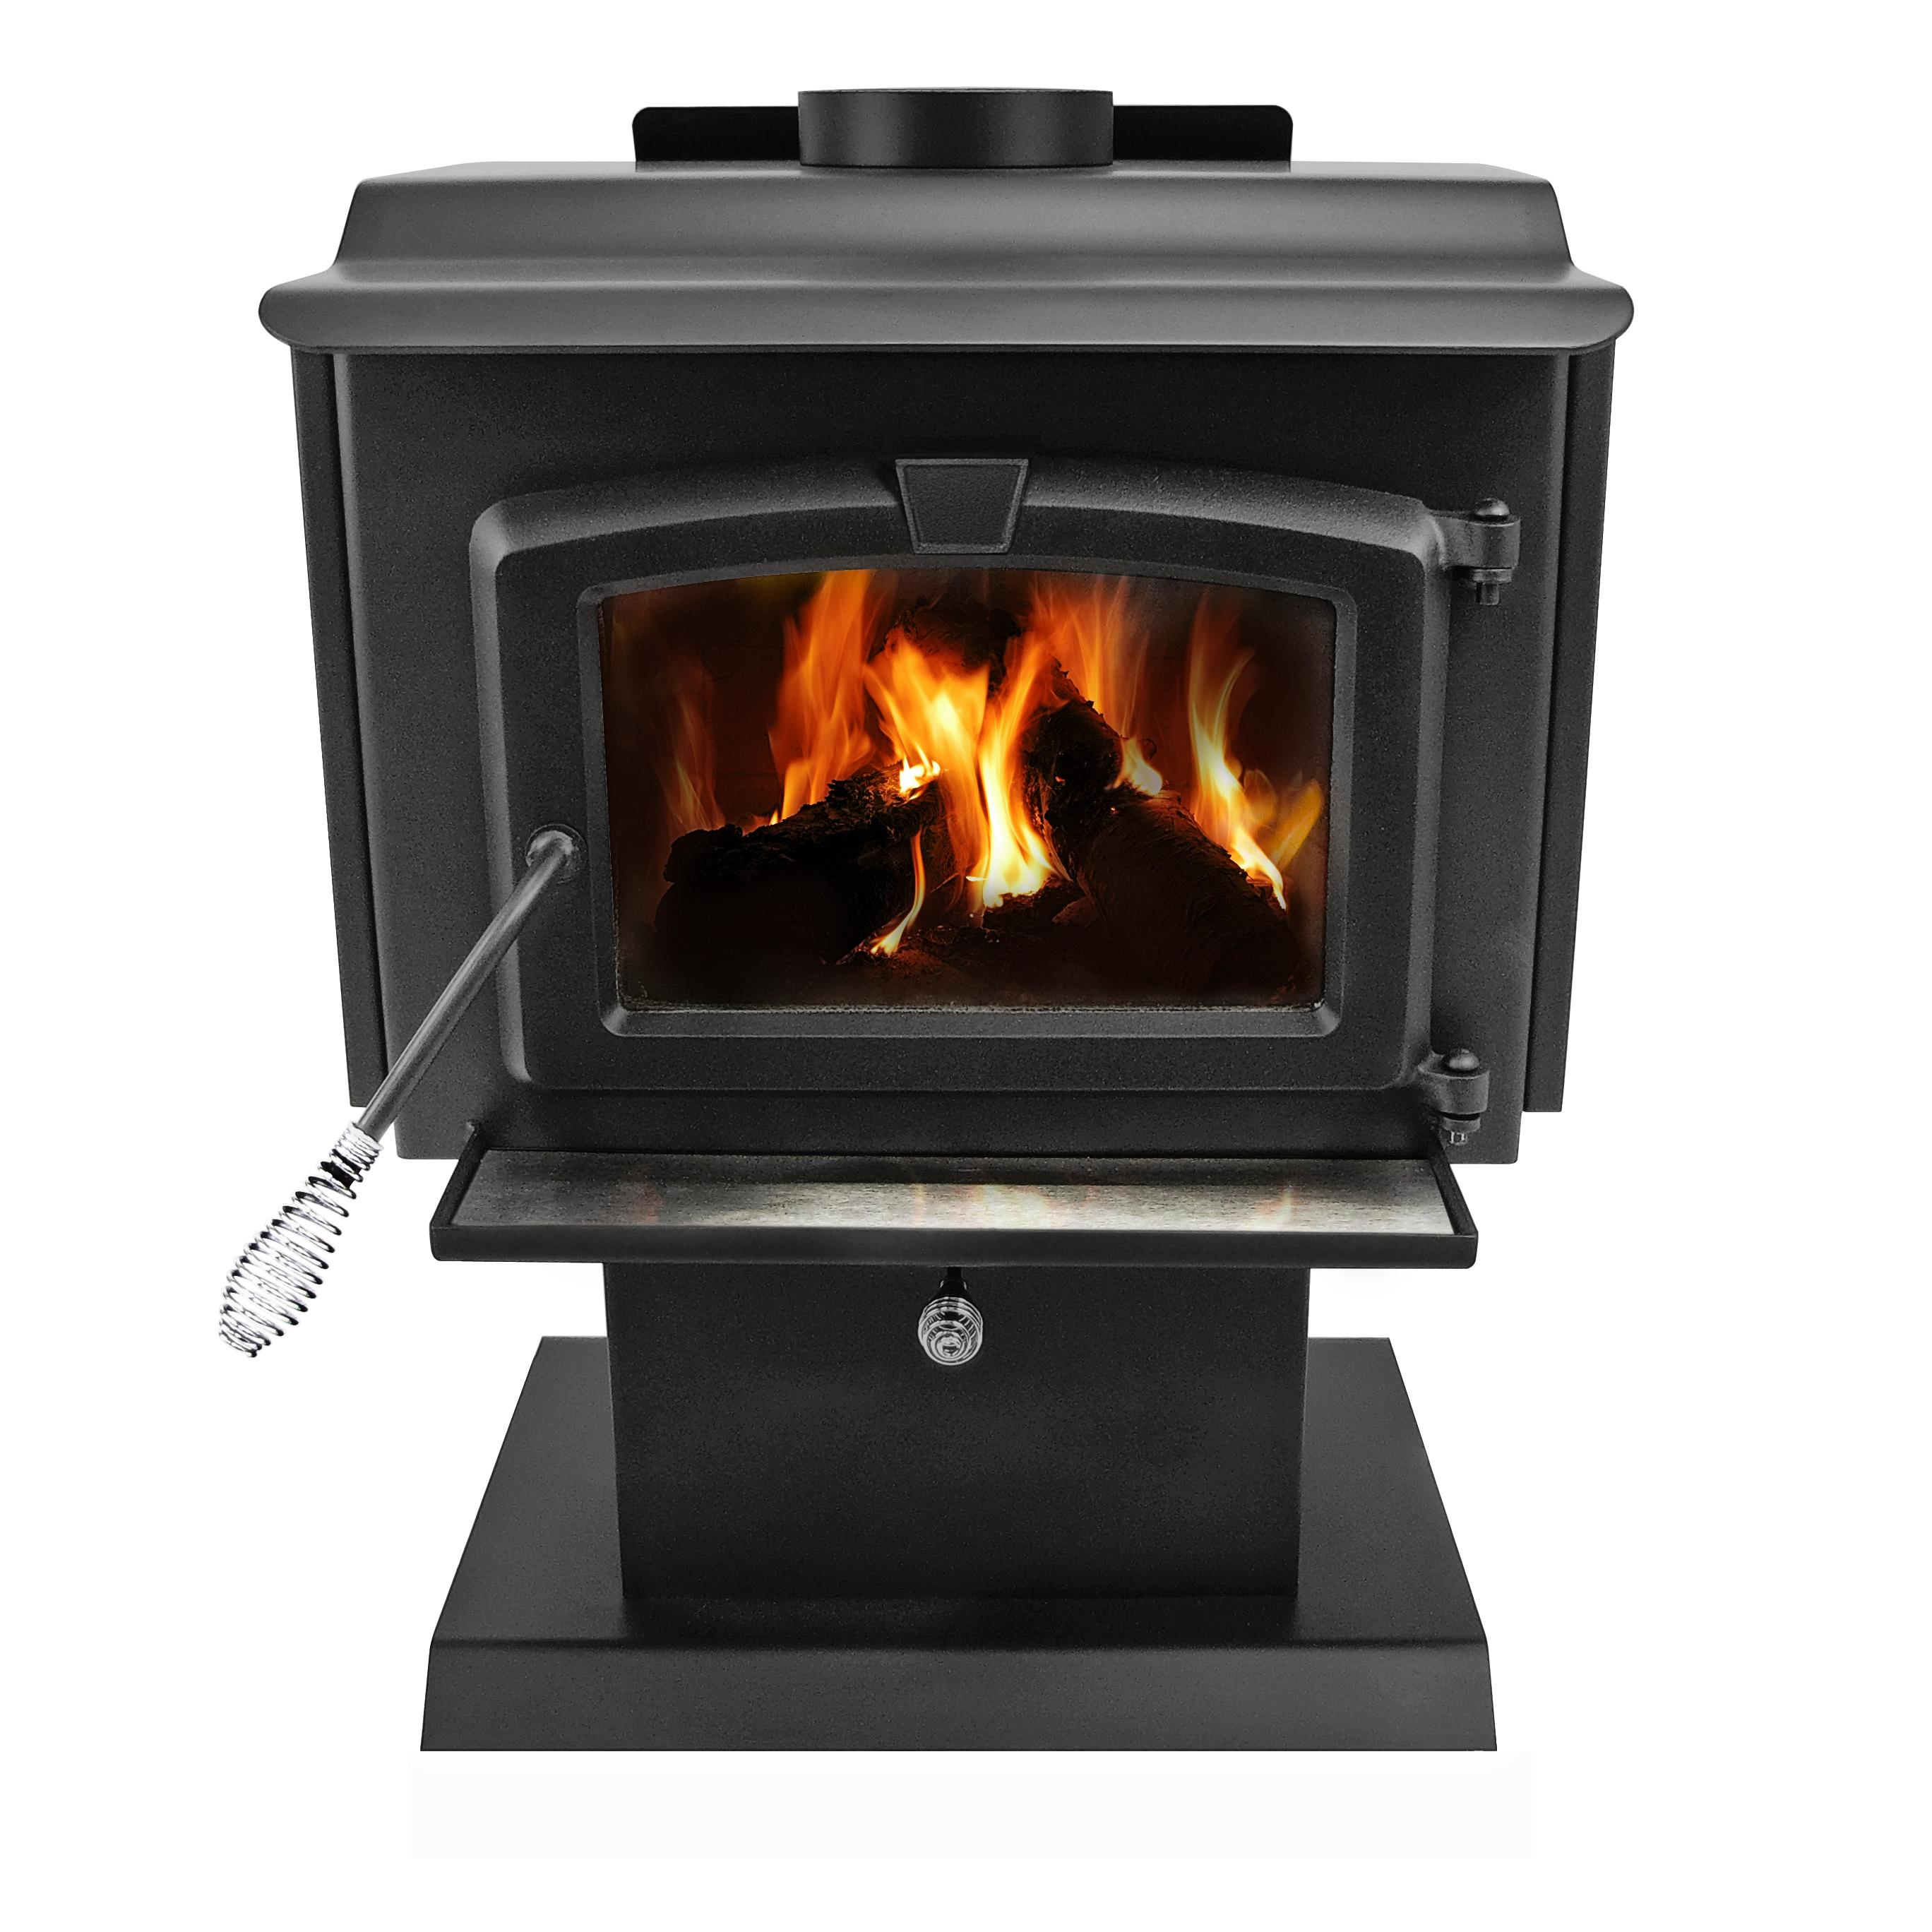 View larger for Most efficient small wood burning stove